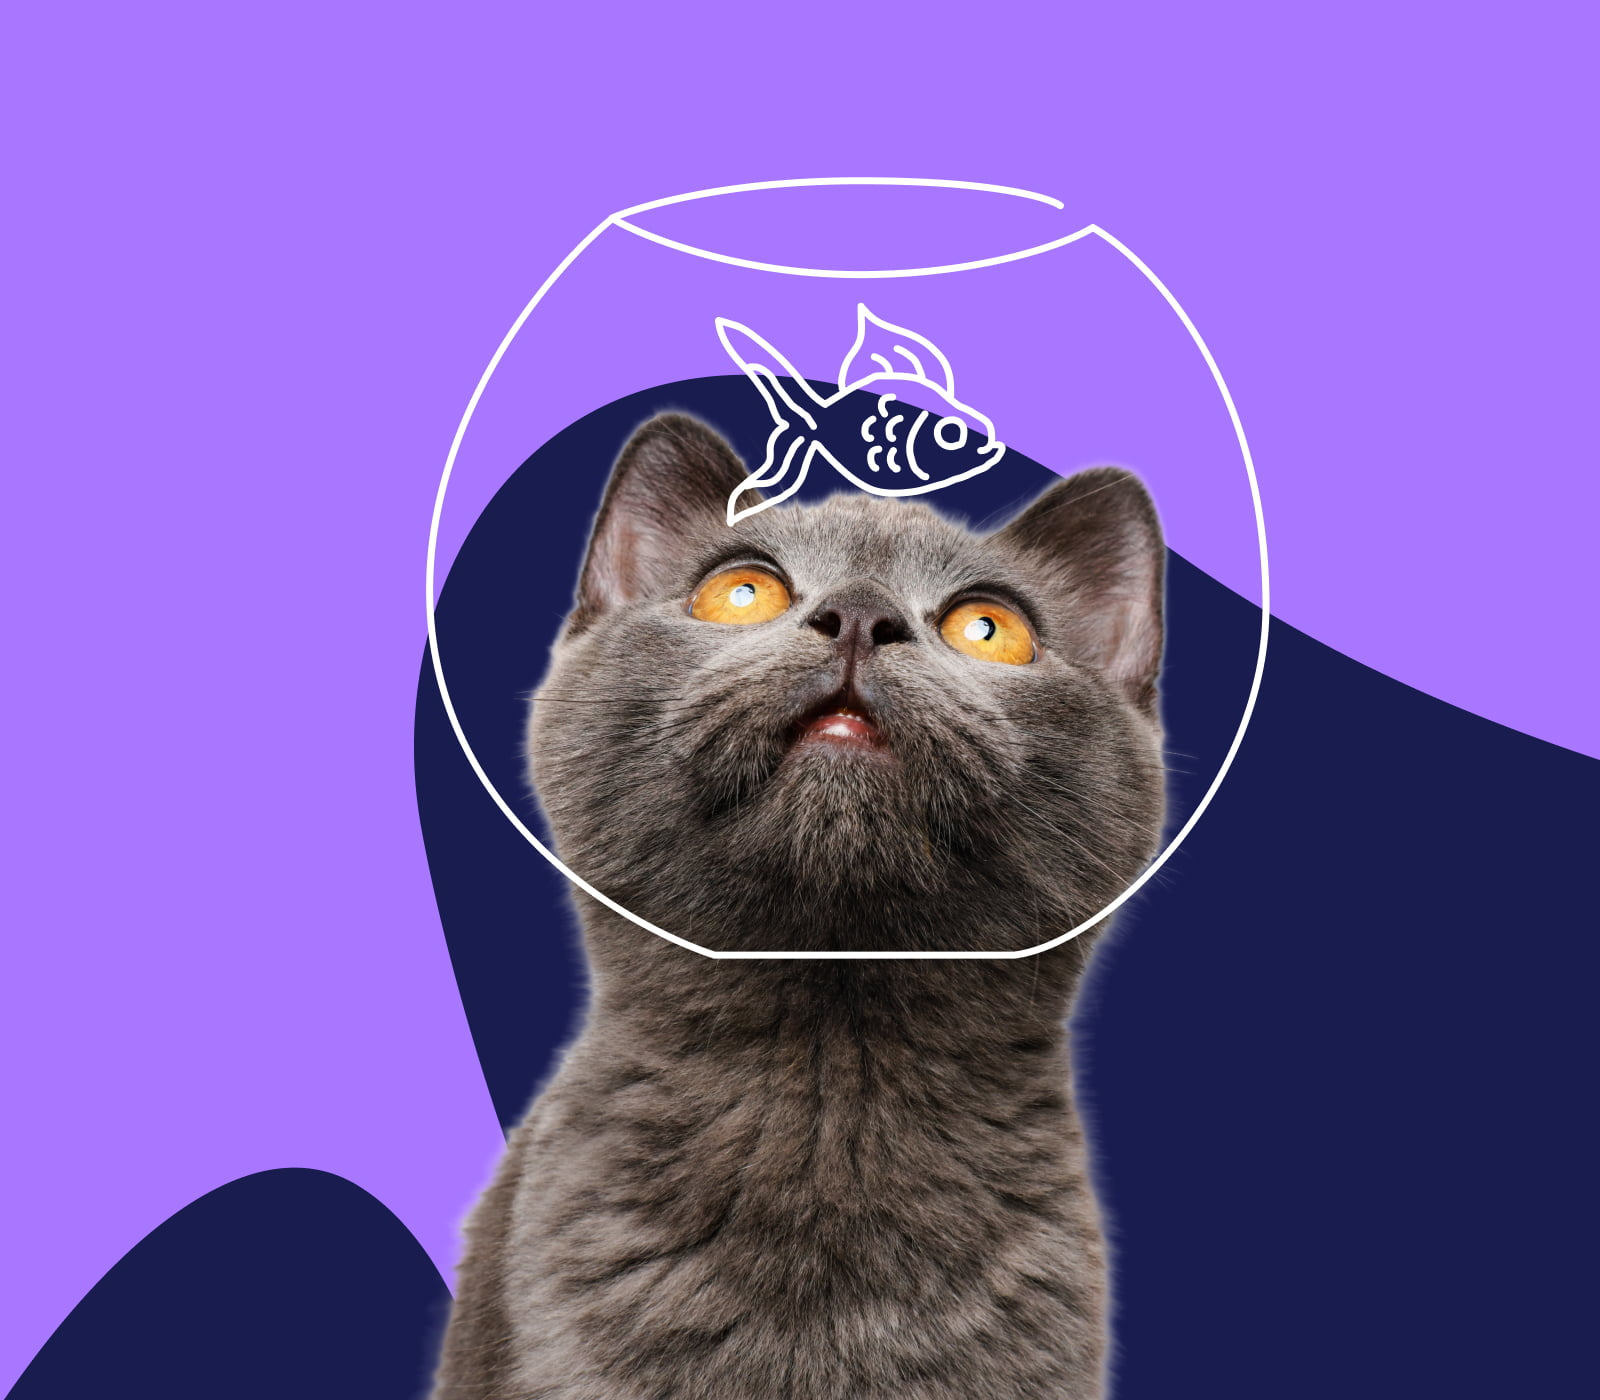 A cat with an upside down fish bowl stuck on their head